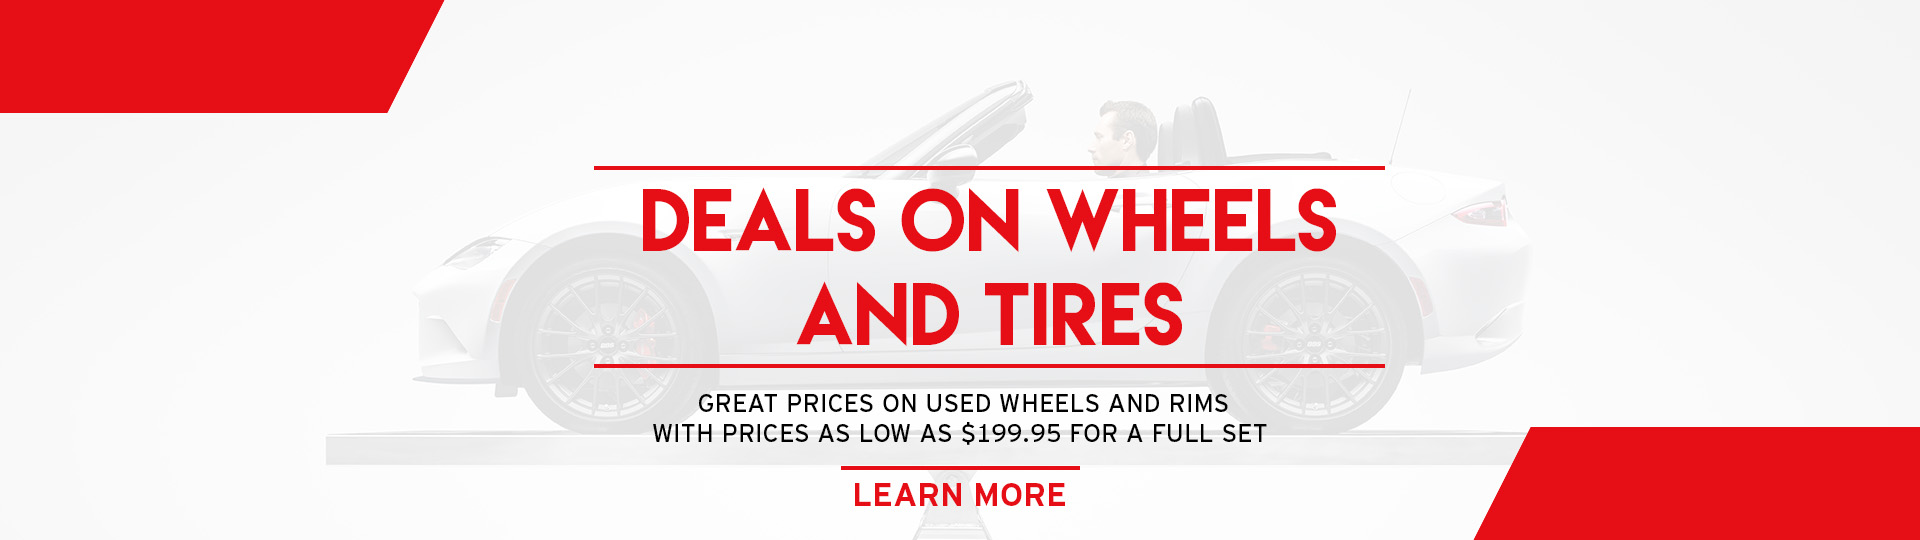 Deals on Wheels and Tires at Angevaare Mazda